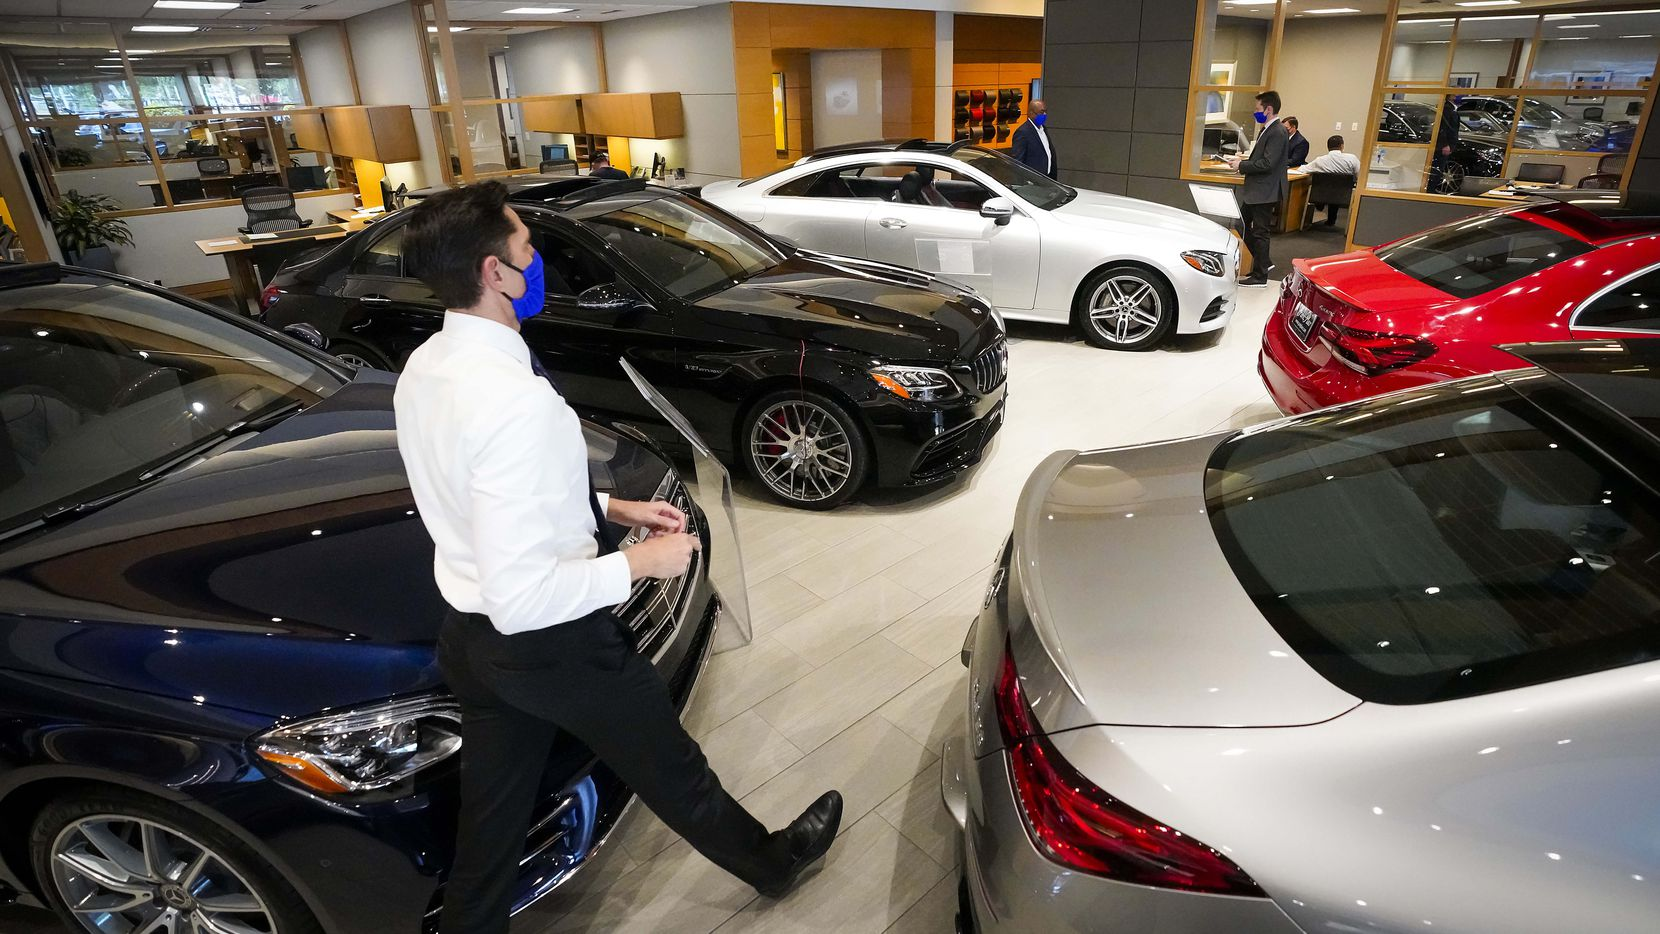 After Christmas Sales Dallas Tx 2020 North Texas car dealerships are reopening showrooms after